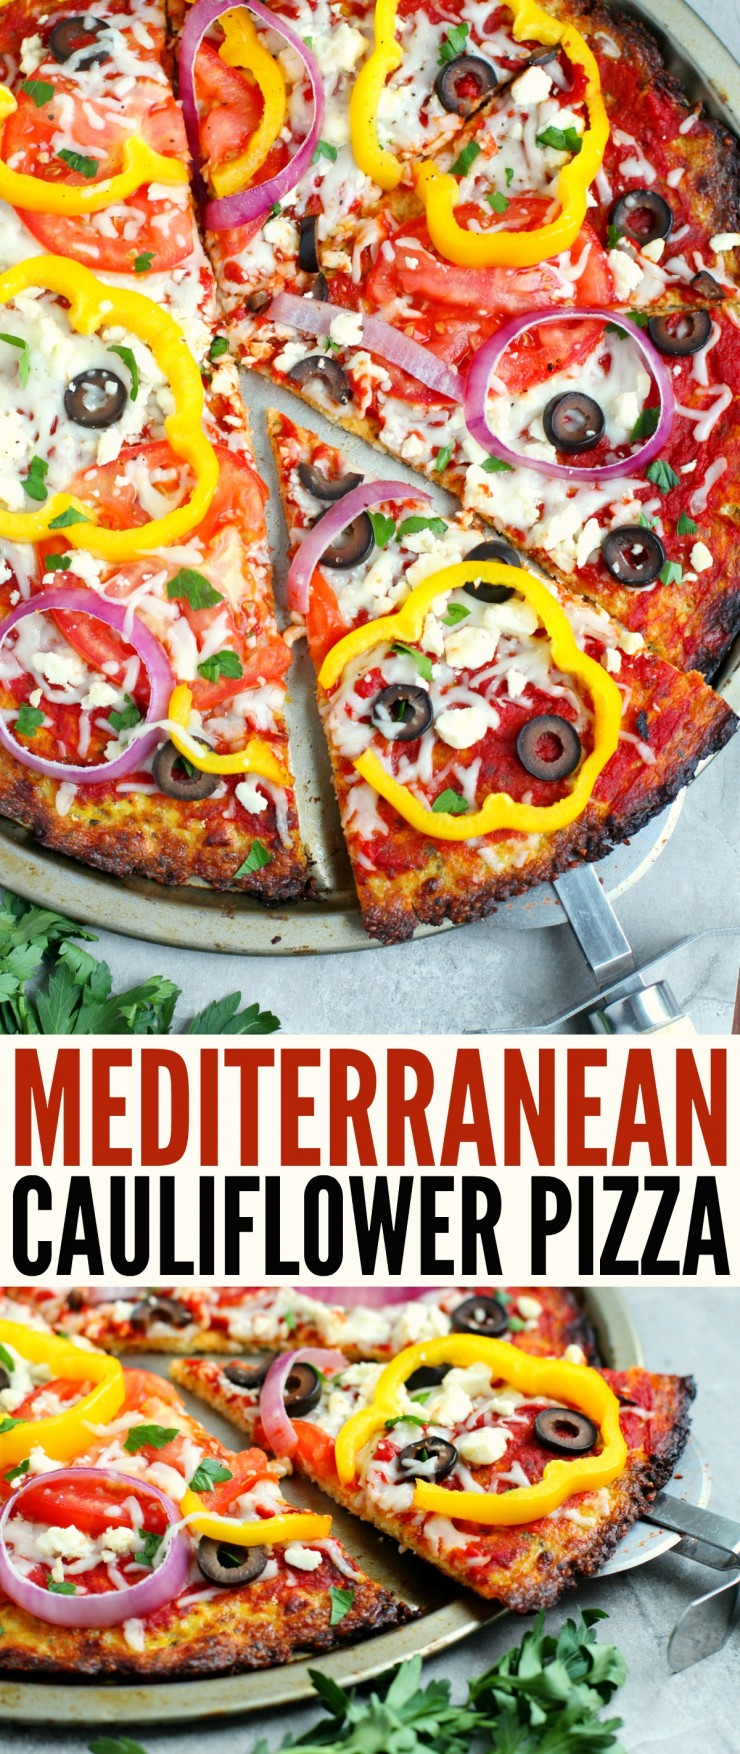 This low carb Mediterranean Cauliflower Pizza is a delicious and healthy twist on a family favourite. The crisp flavourful crust is sure to be a hit!